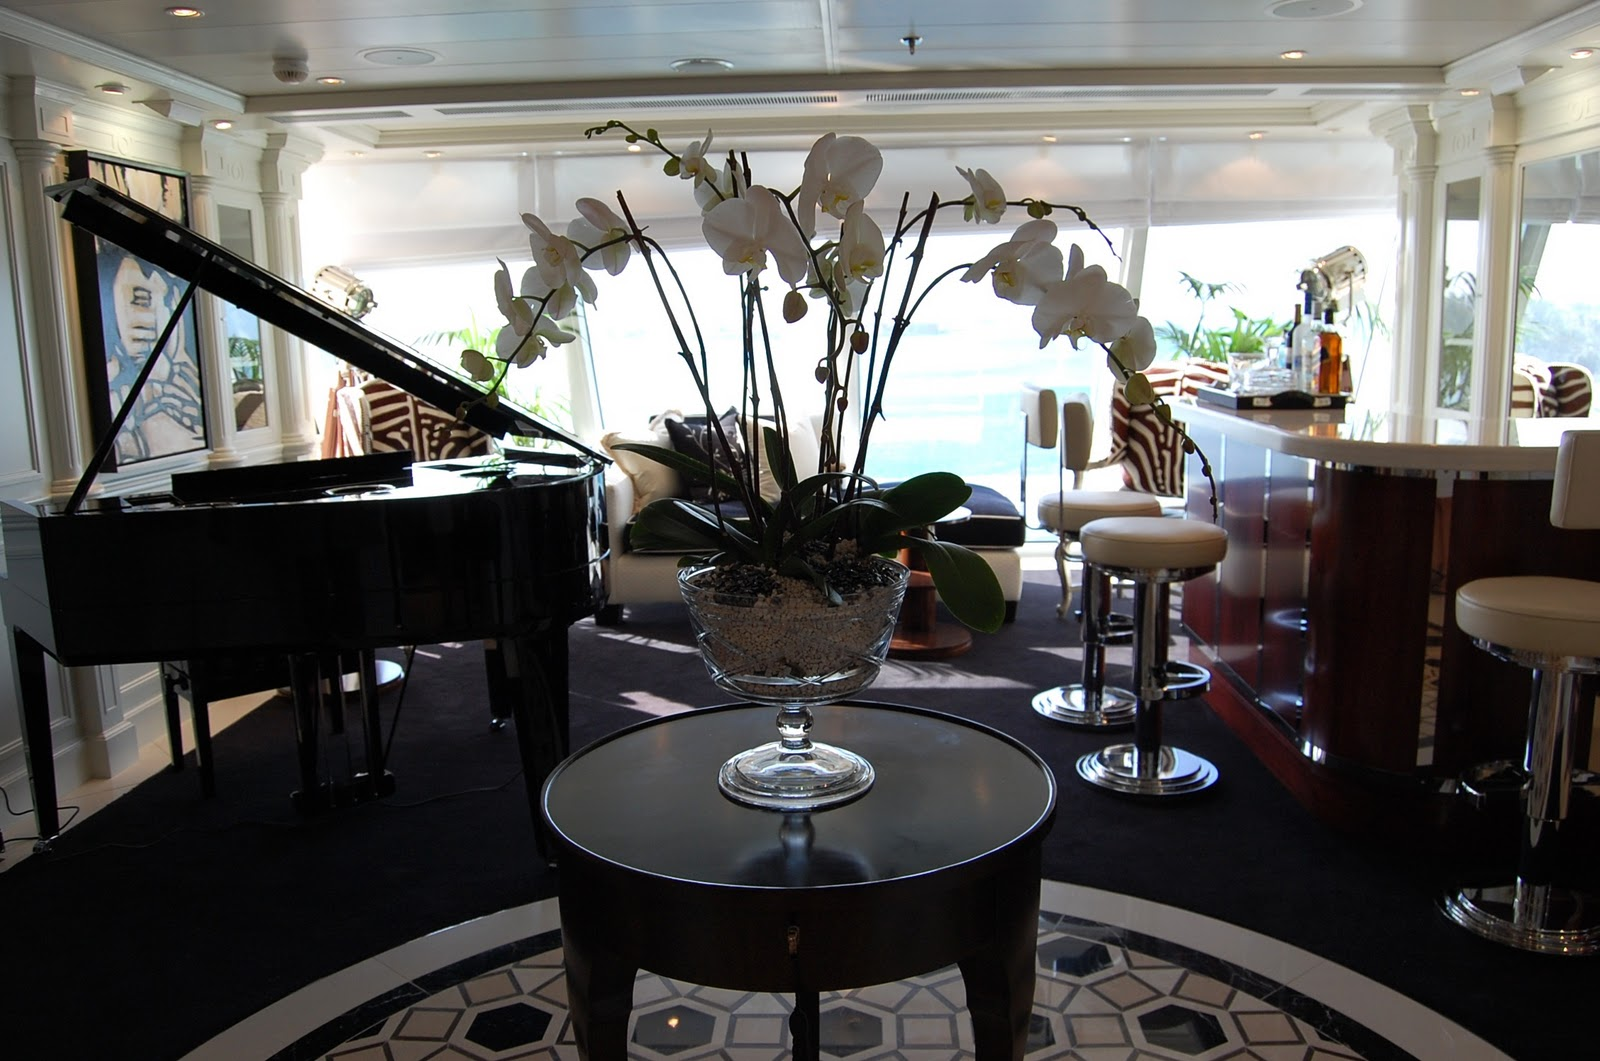 ralph lauren at sea ellegant home design it was decorated by susan bednar long of s b long interiors in collaboration with ralph lauren